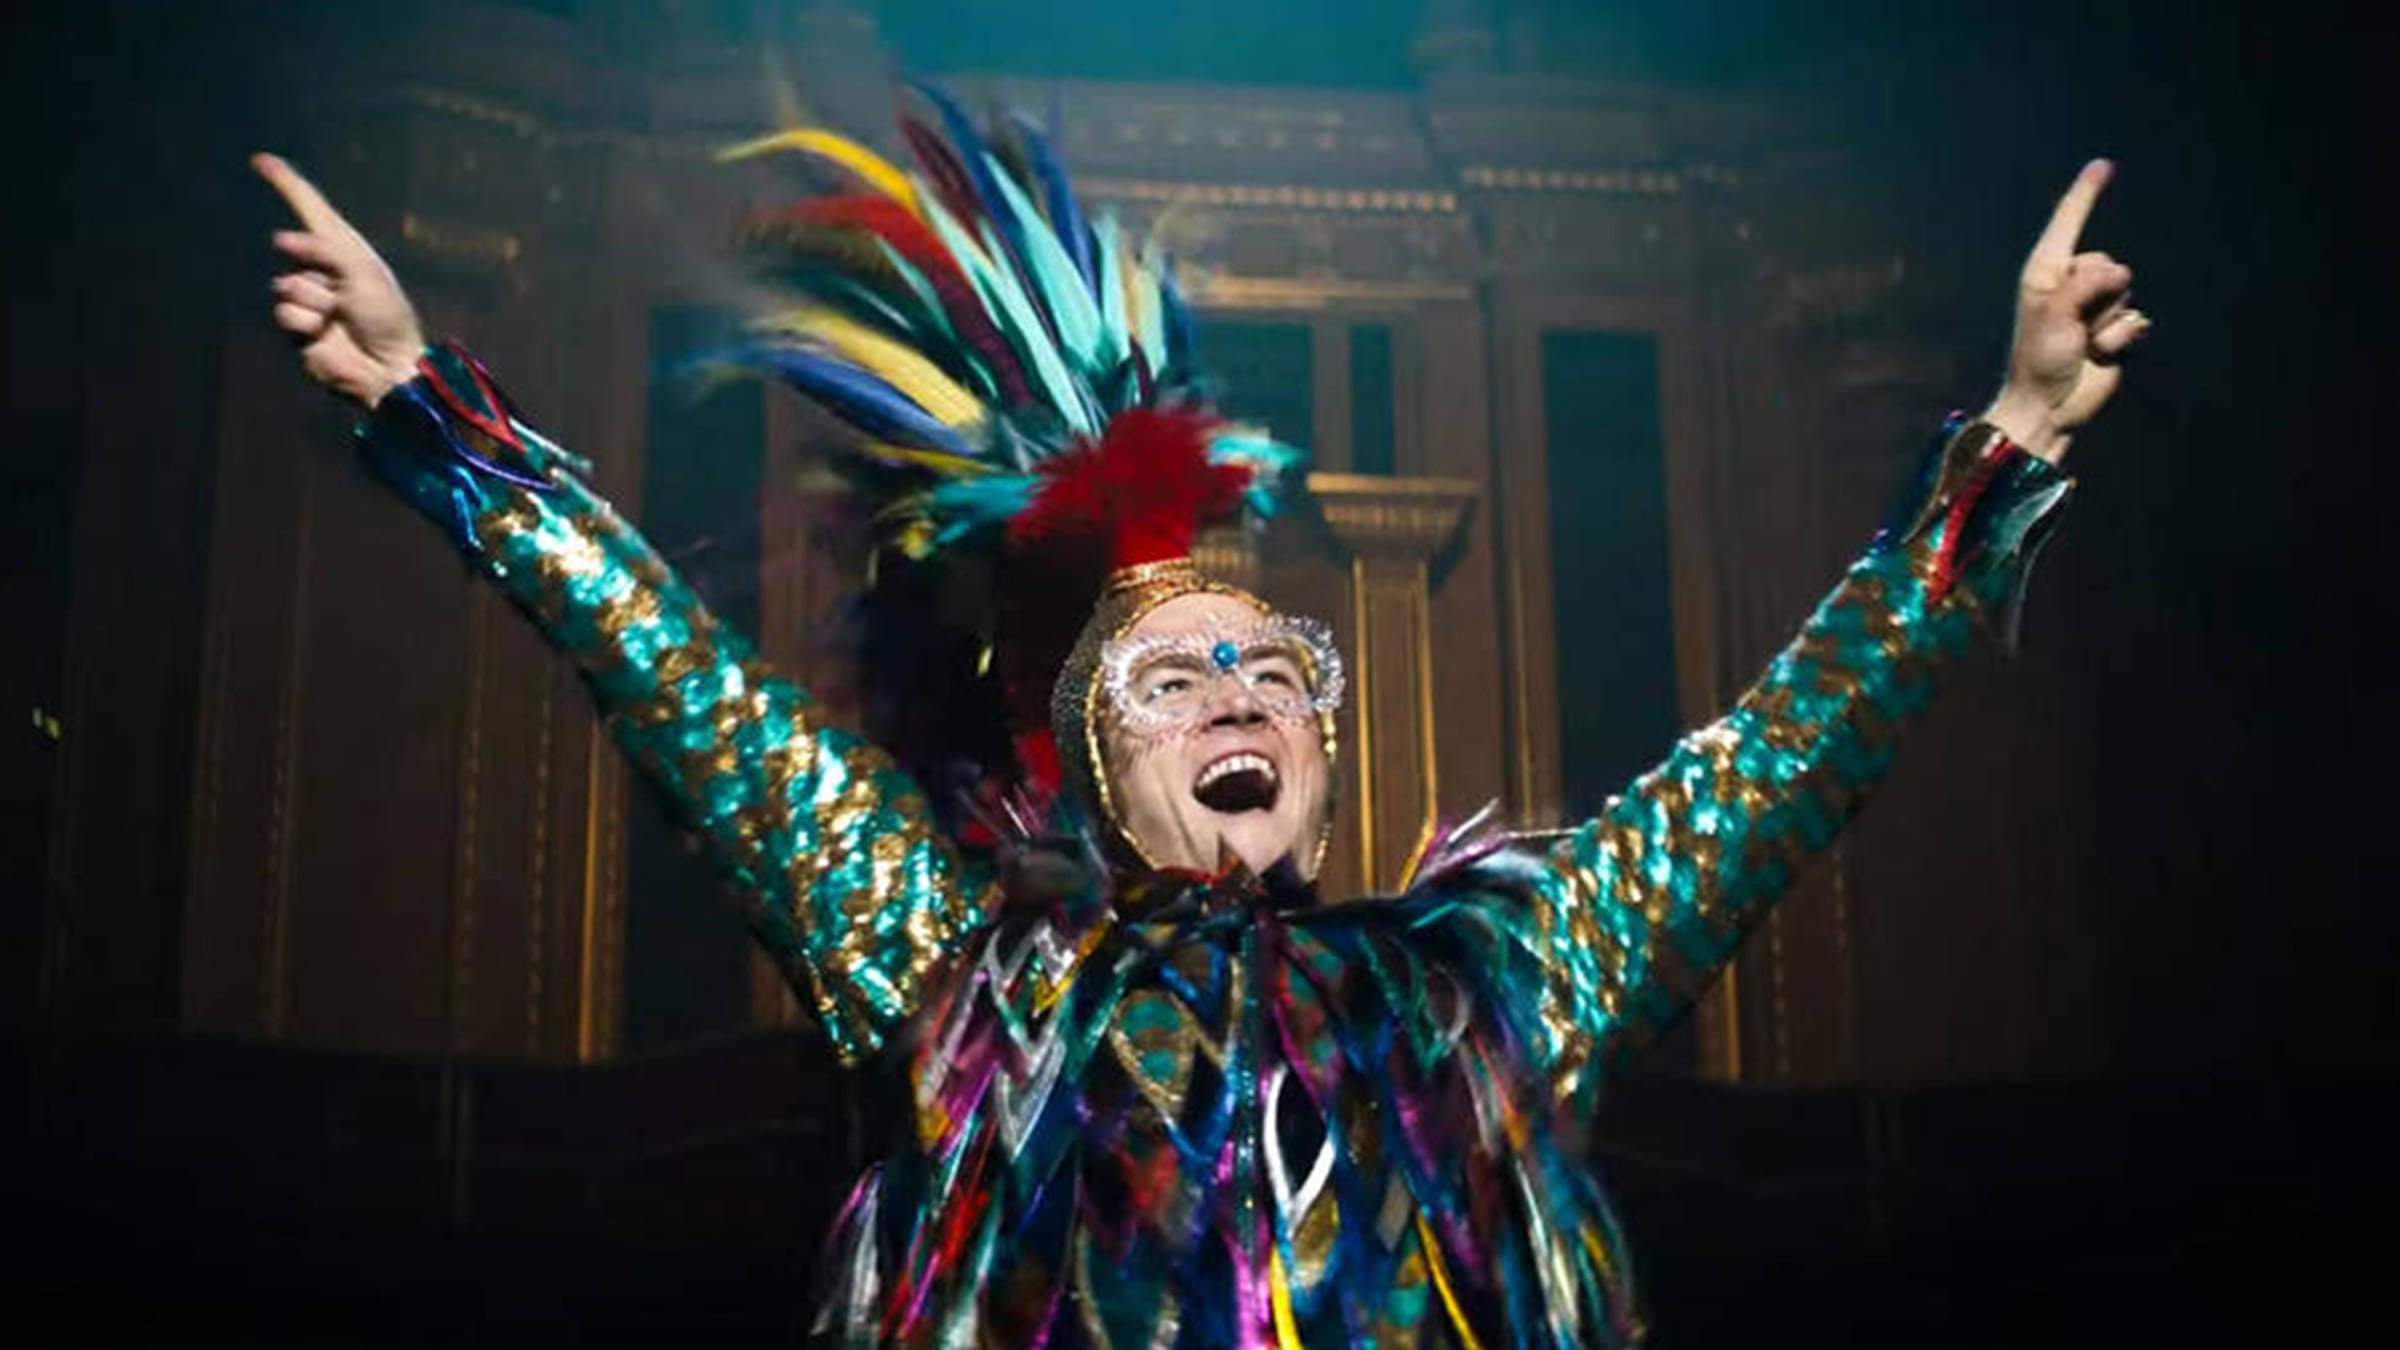 Elton John criticizes Russian distributor's decision to cut scenes from Rocketman